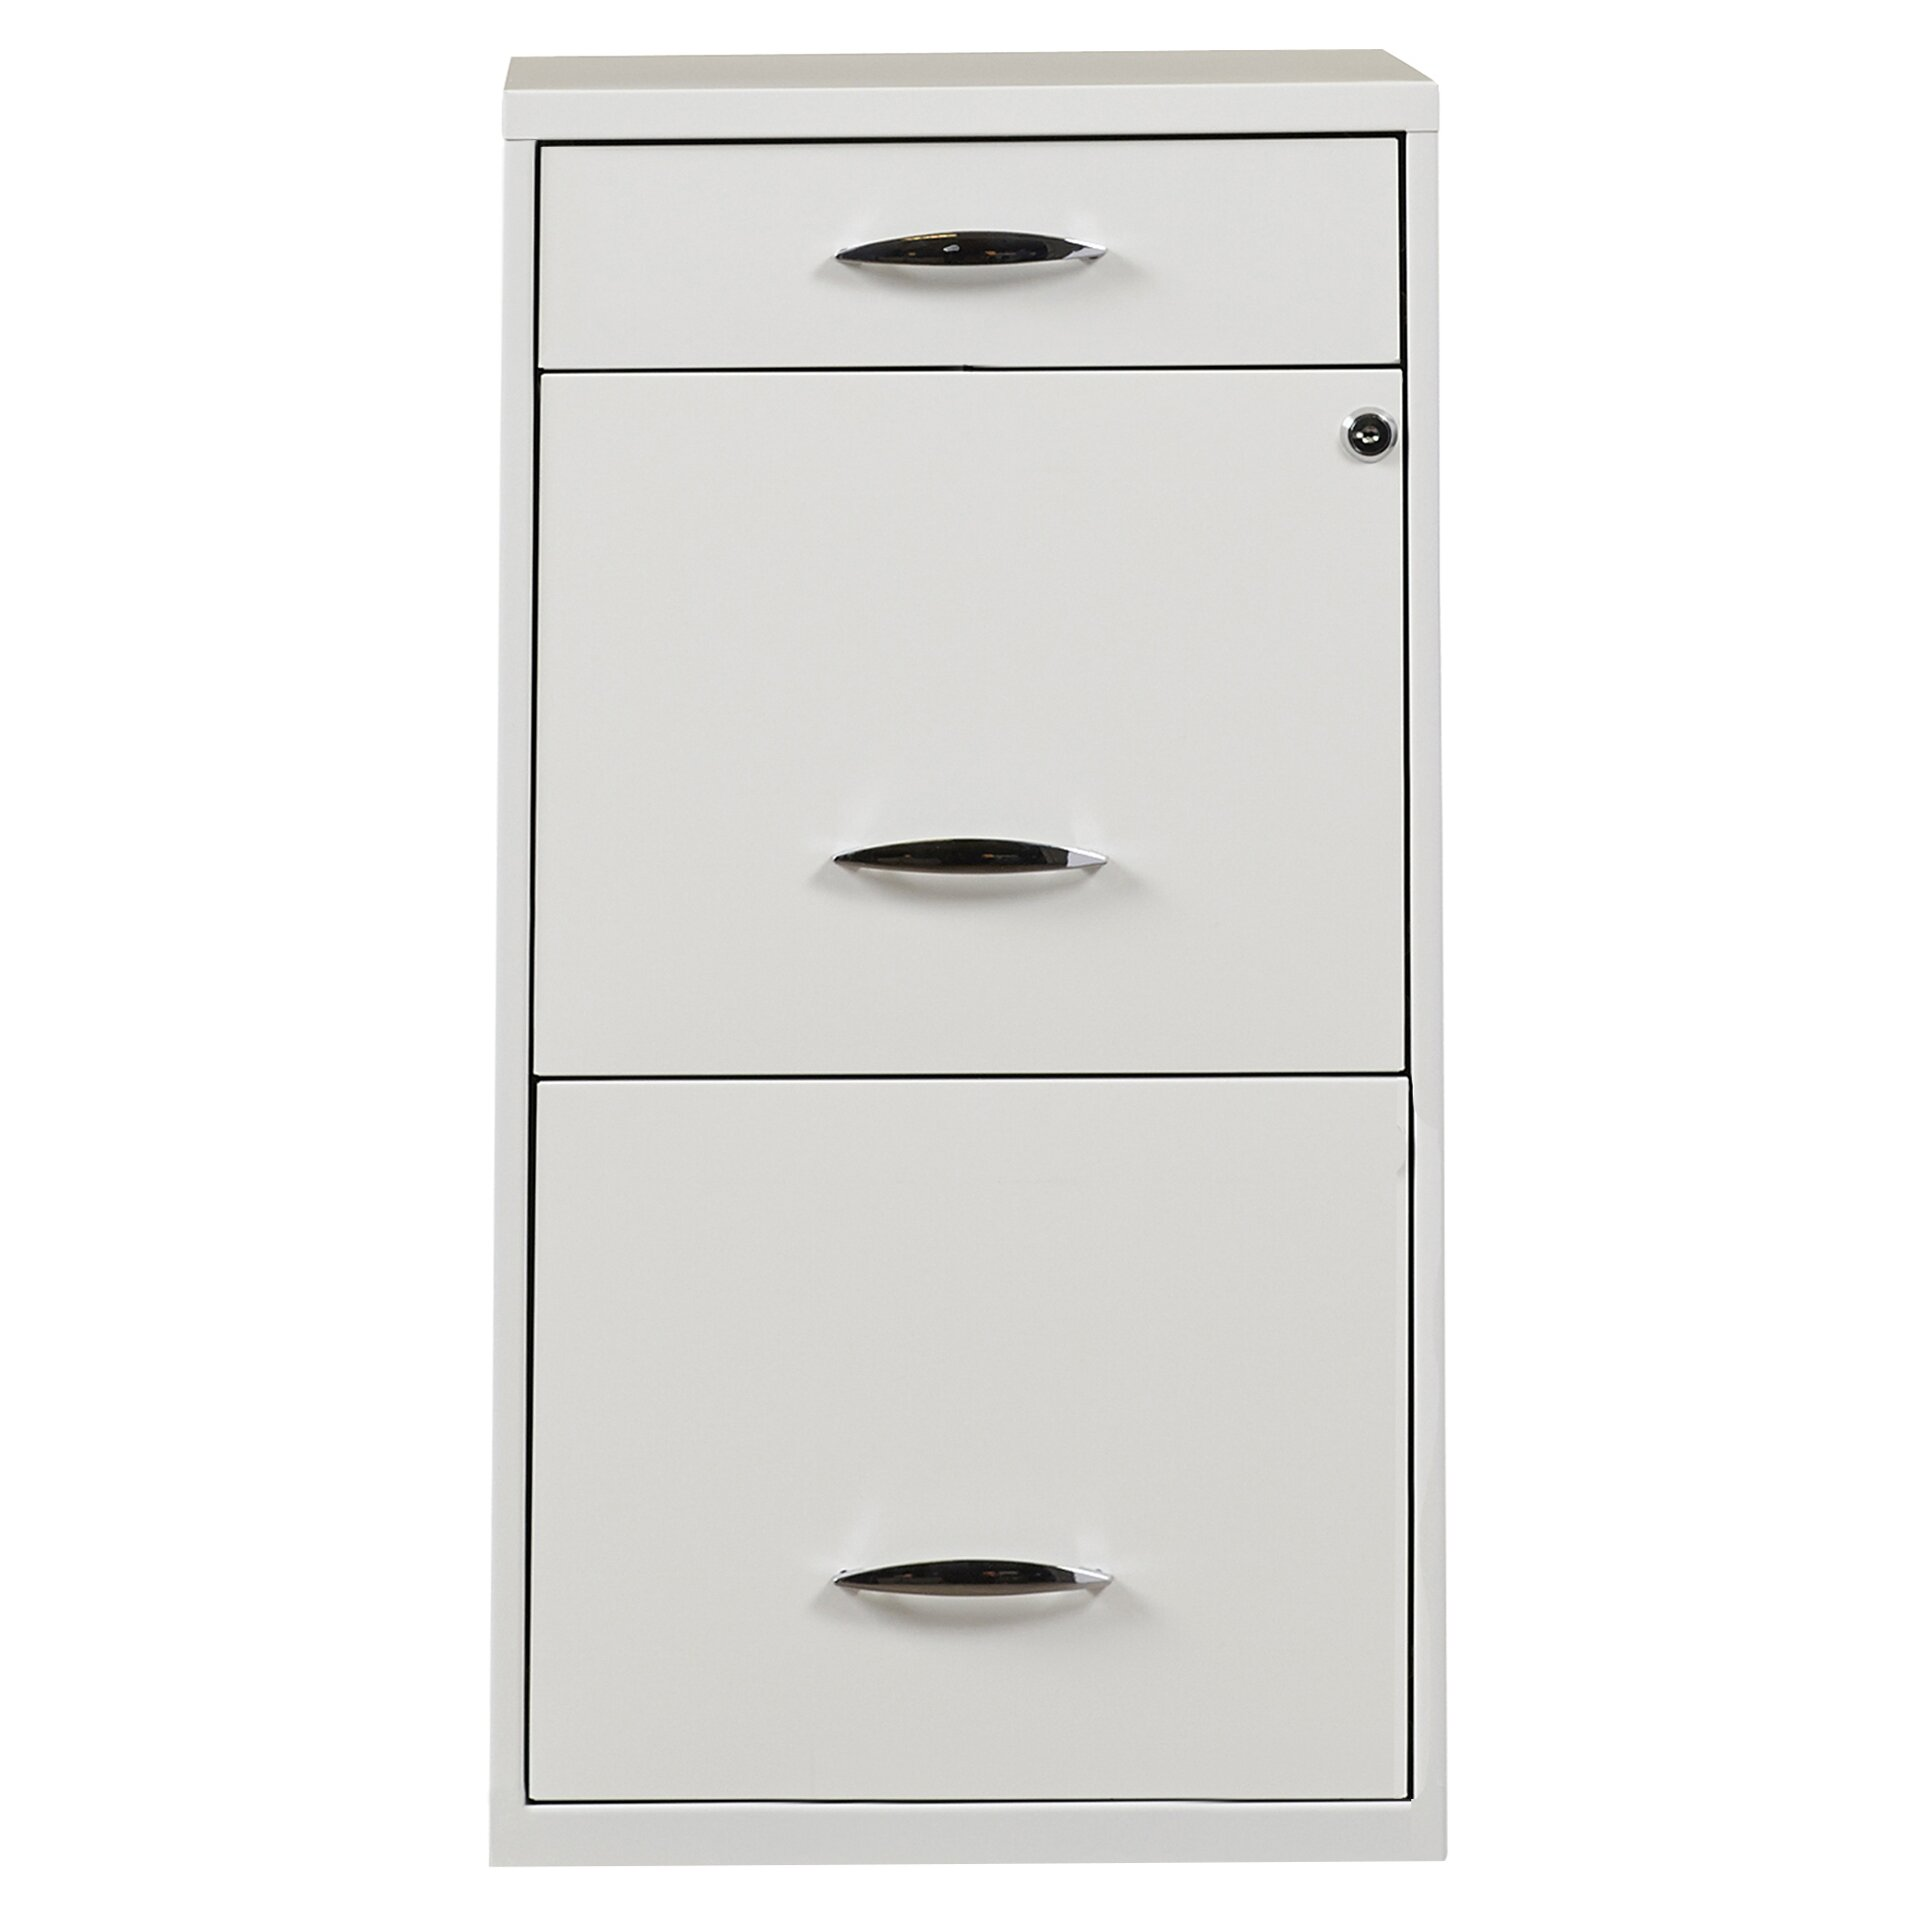 Lorell Lateral File Cabinet Symple Stuff Steel 3 Drawer Filing Cabinet Reviews Wayfair